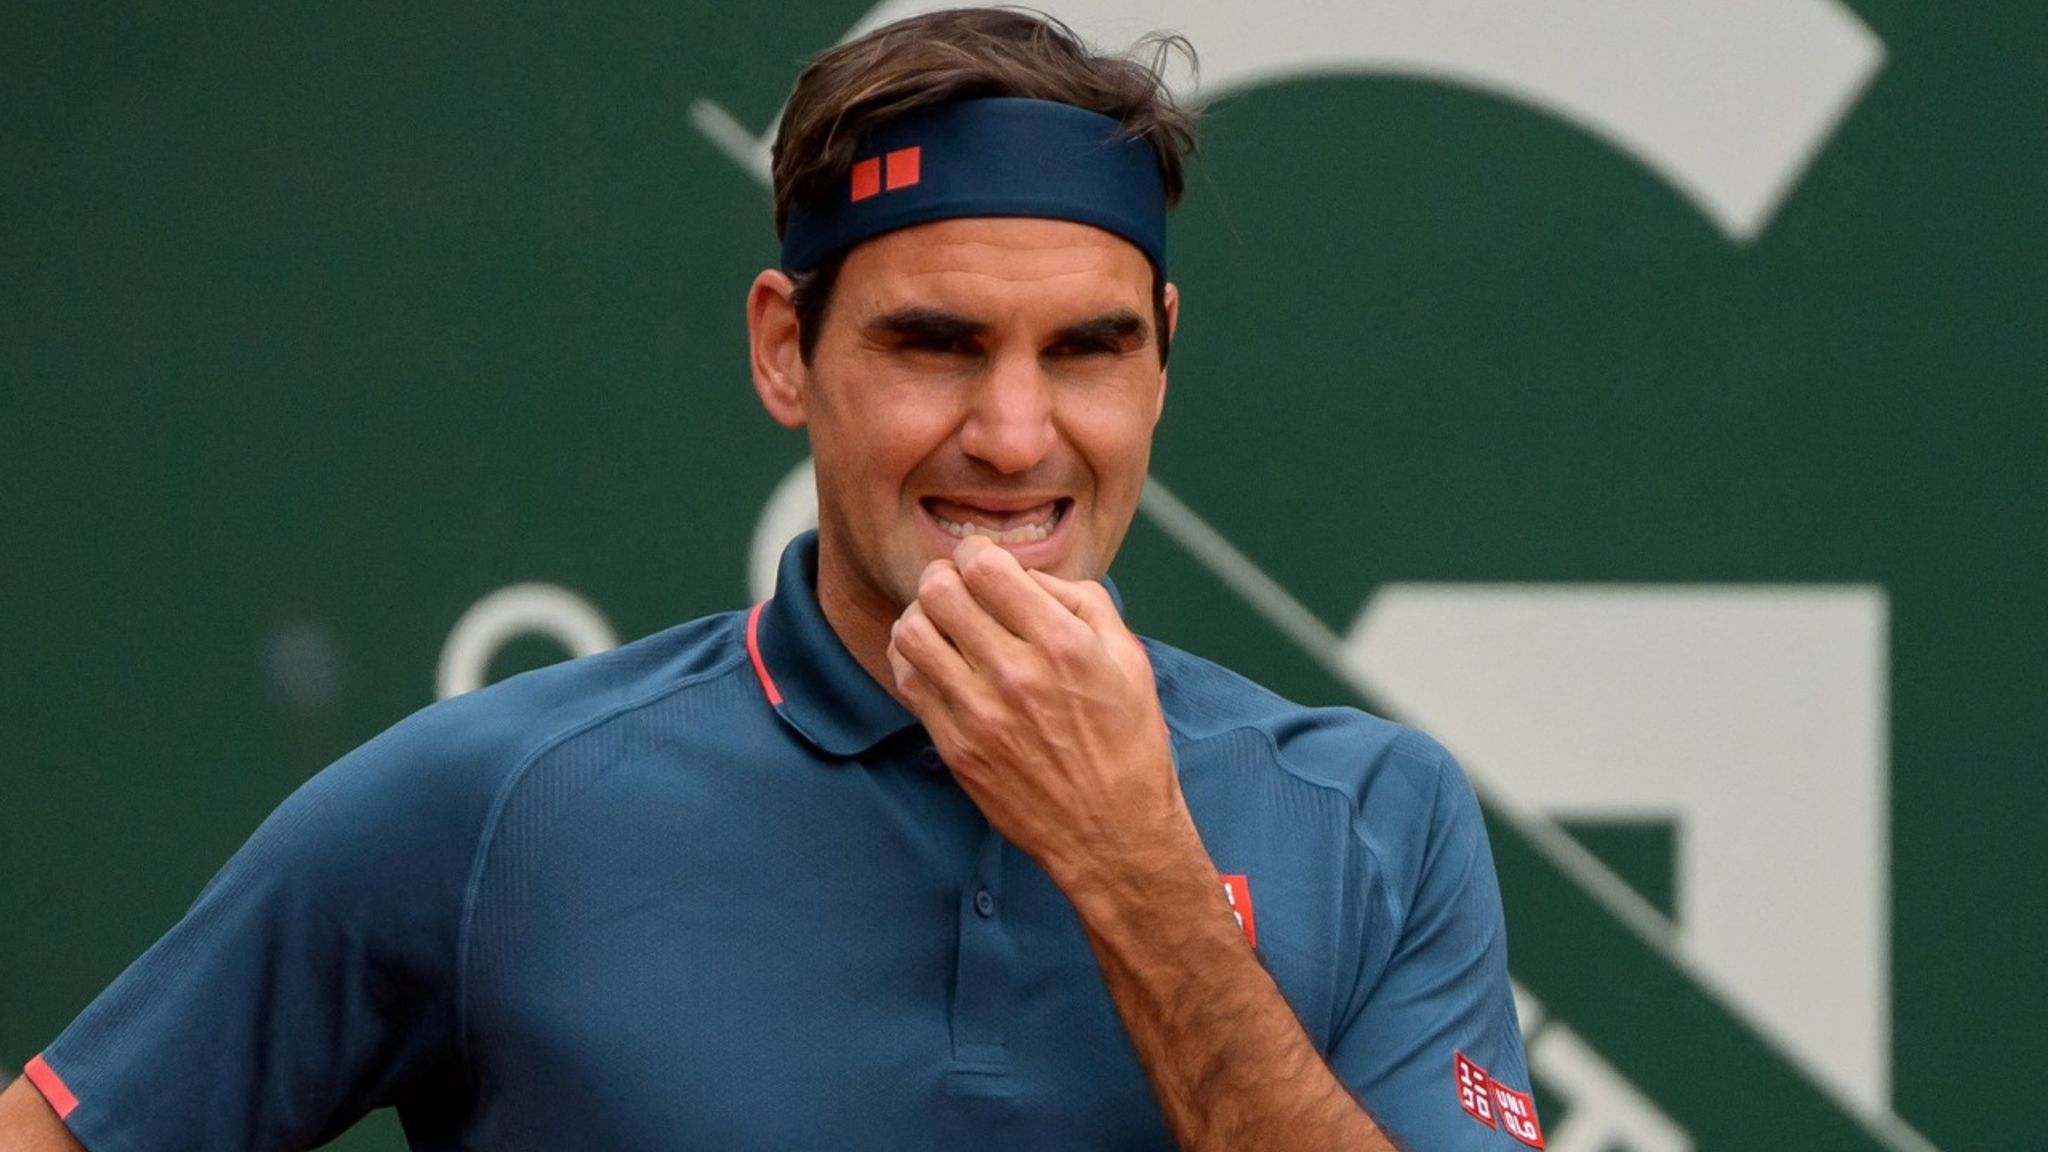 Roger Federer Suffers Early Exit At Geneva Open As He Makes His Return To Tennis Tennis News Sky Sports